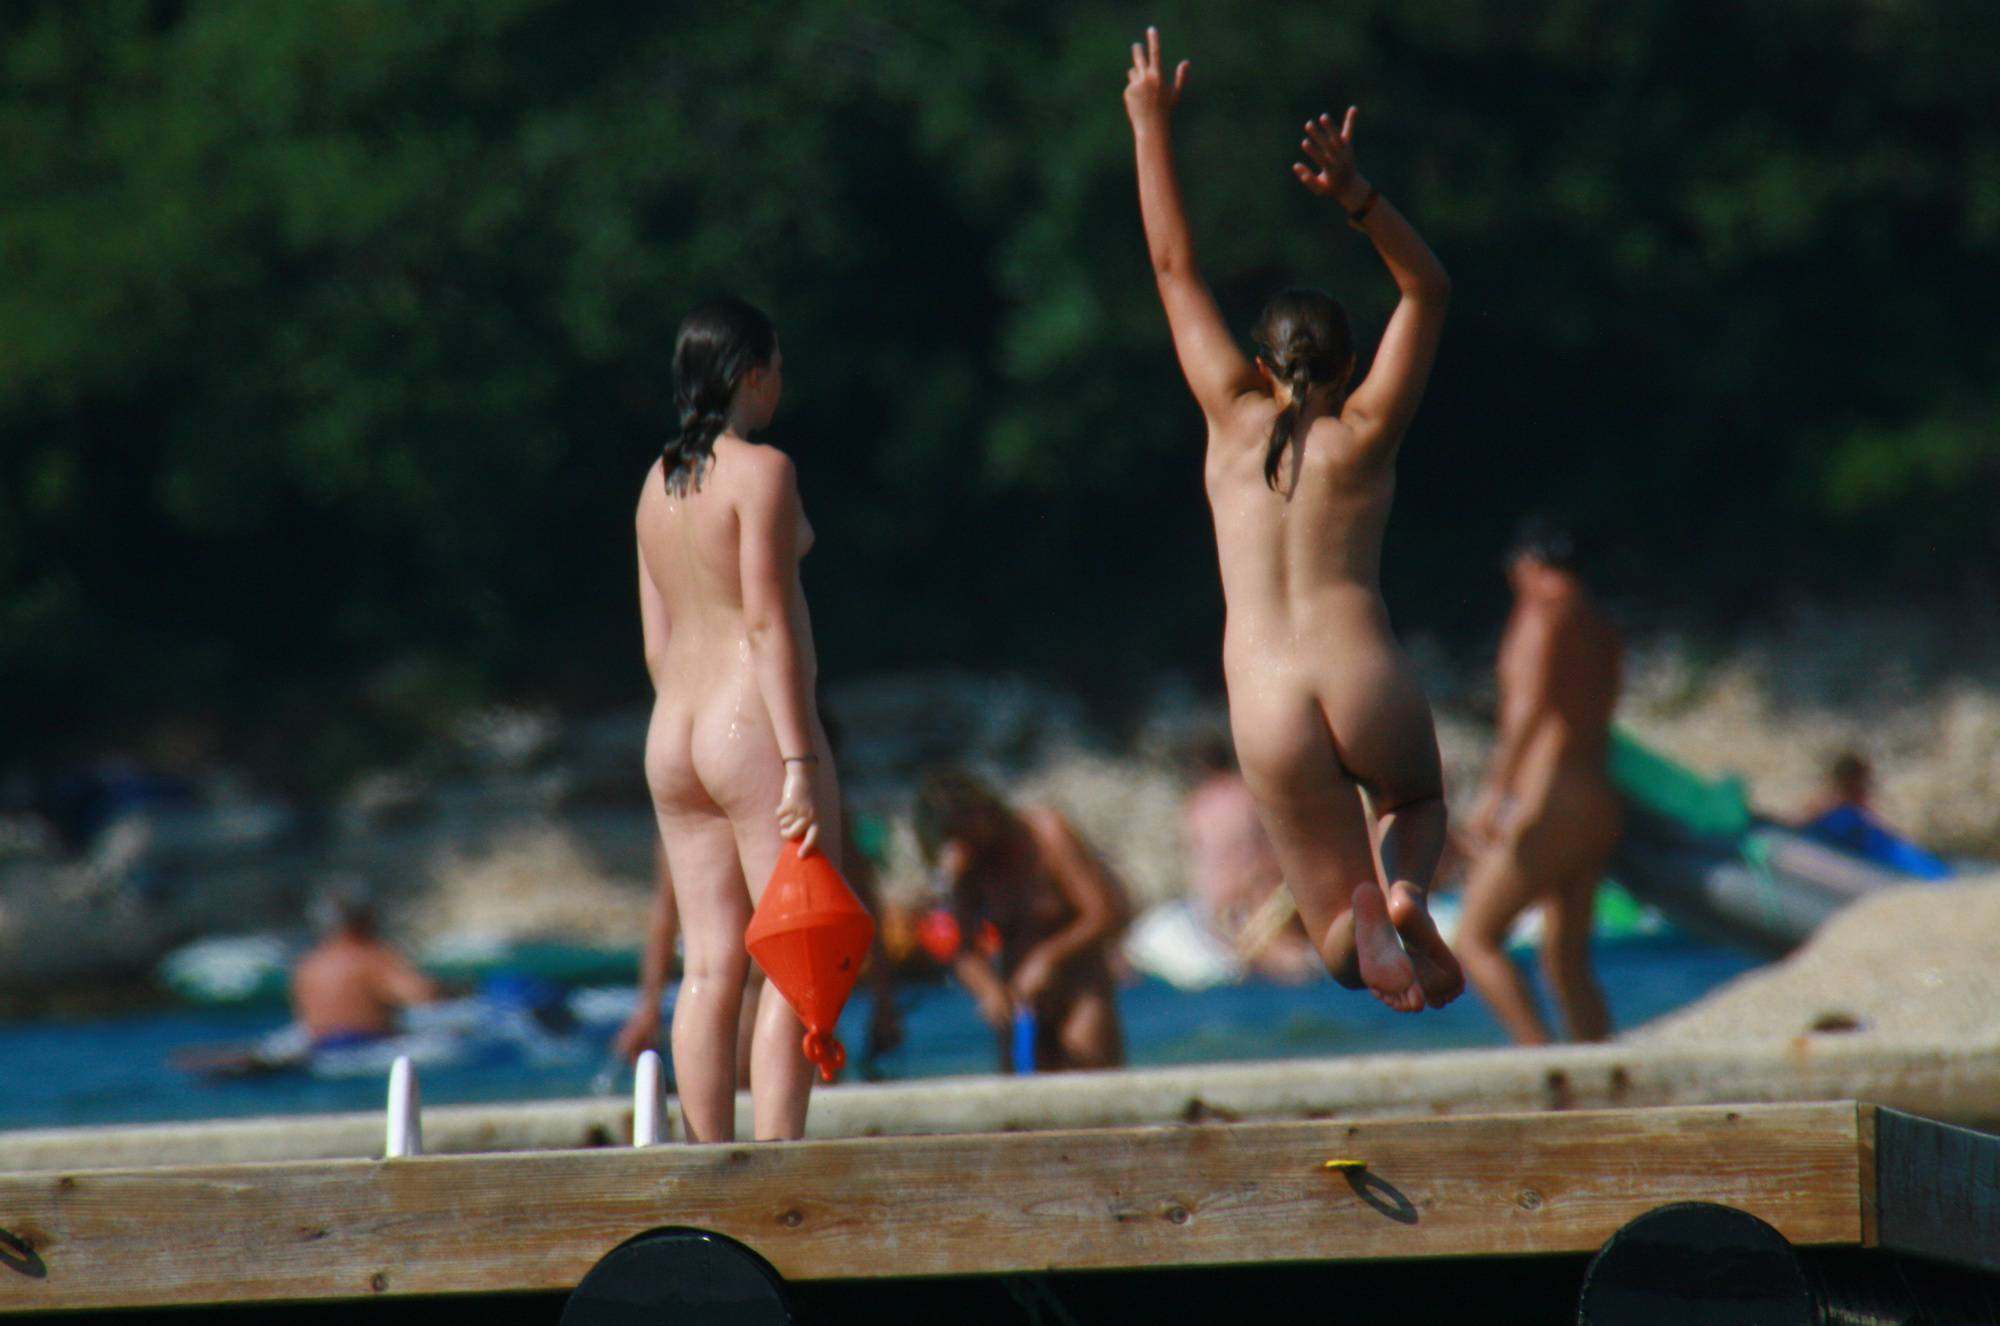 Nudist Pictures Wooden Island Freedom - 1